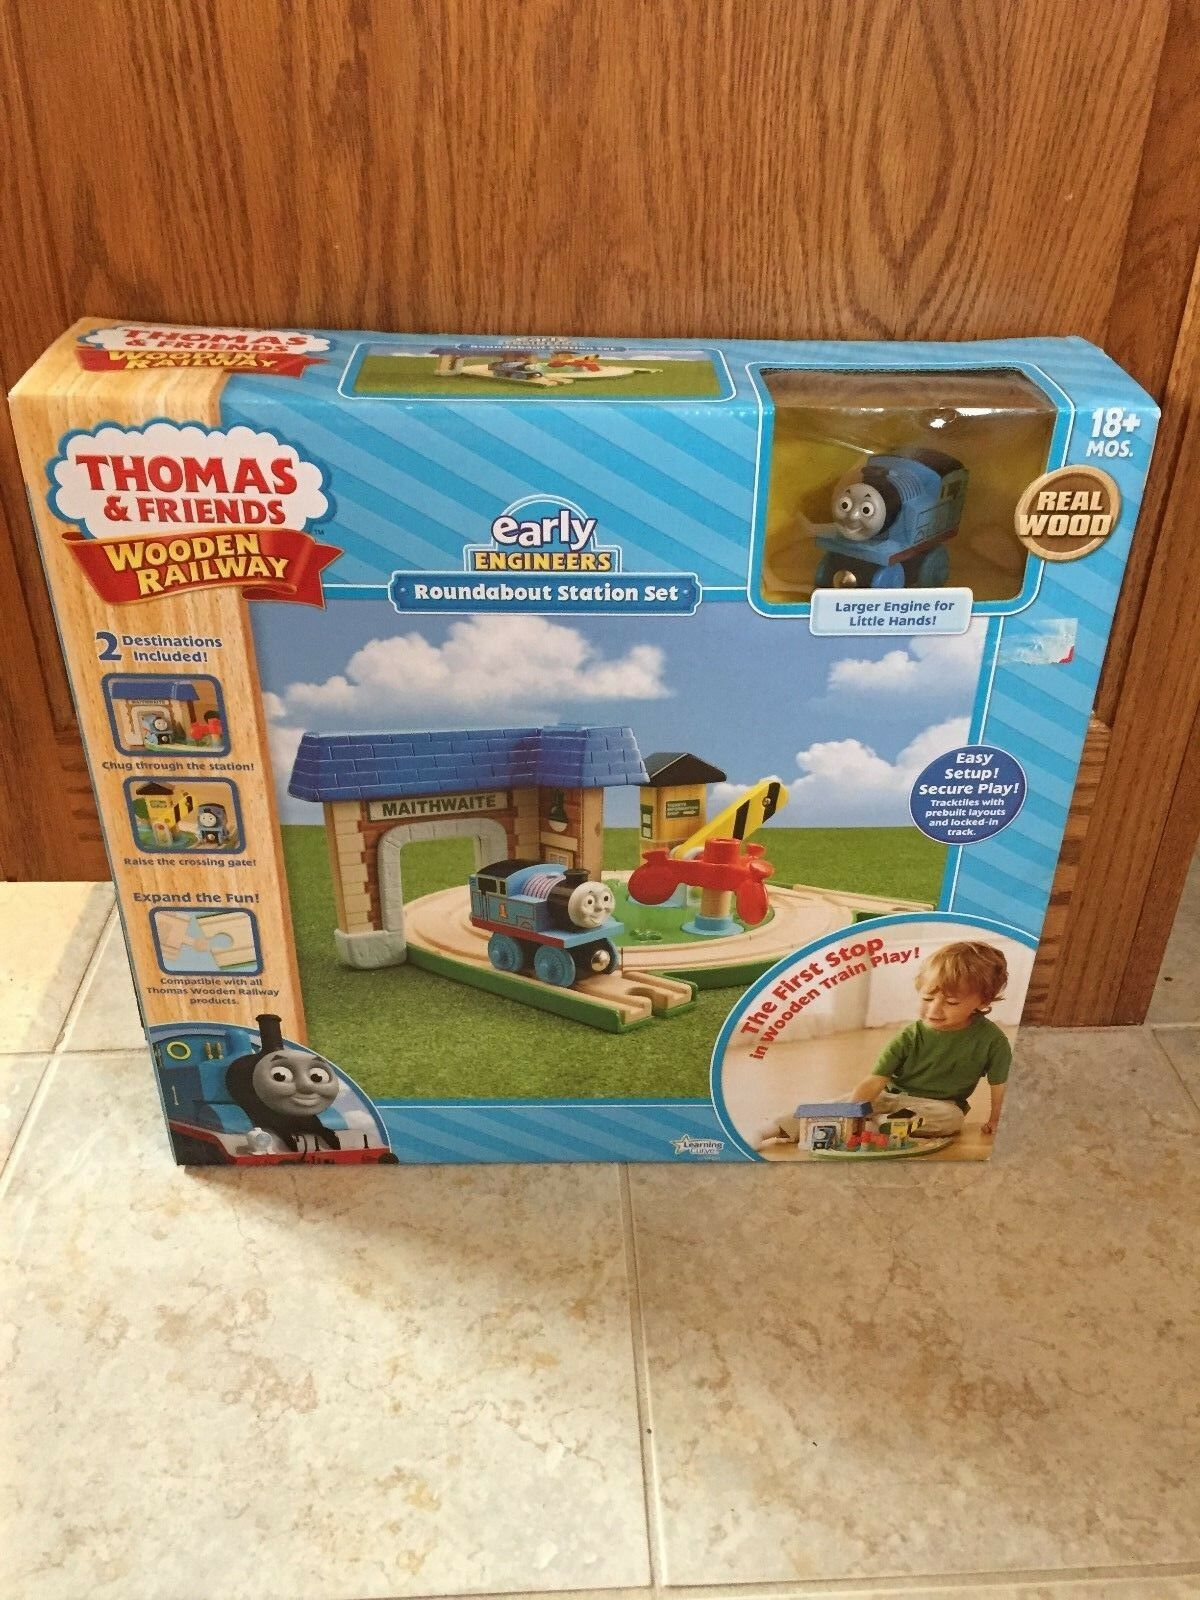 Thomas & Friends Wooden Railway Early Engineers Round About Station Set New Toy